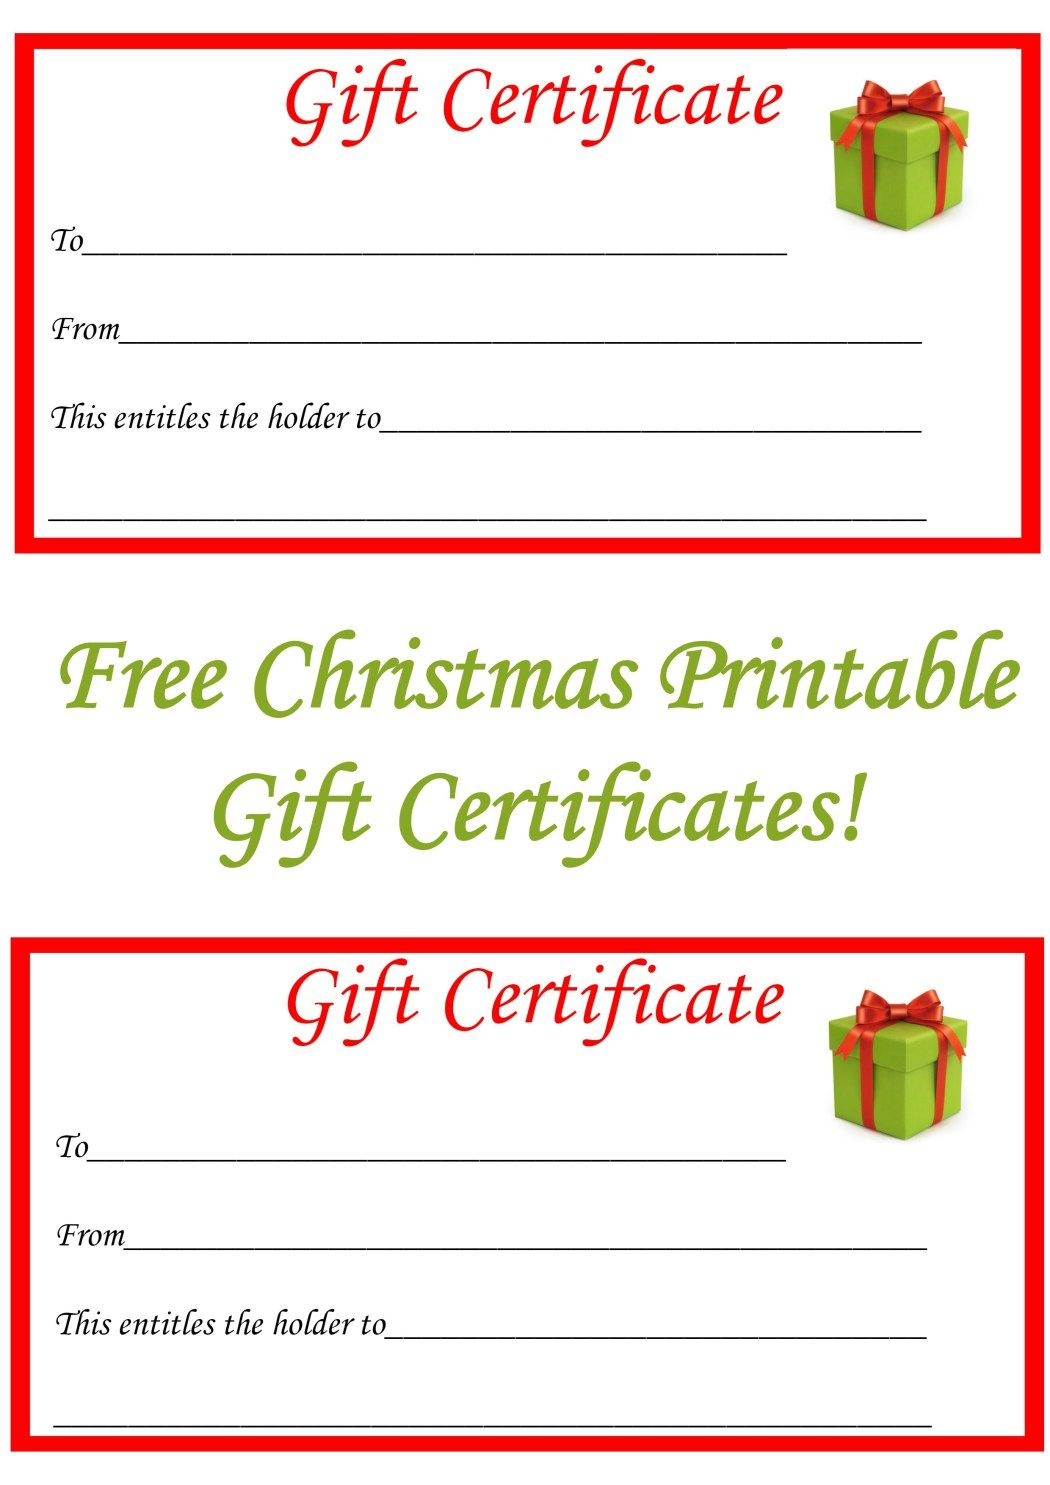 gift certificate printable template free